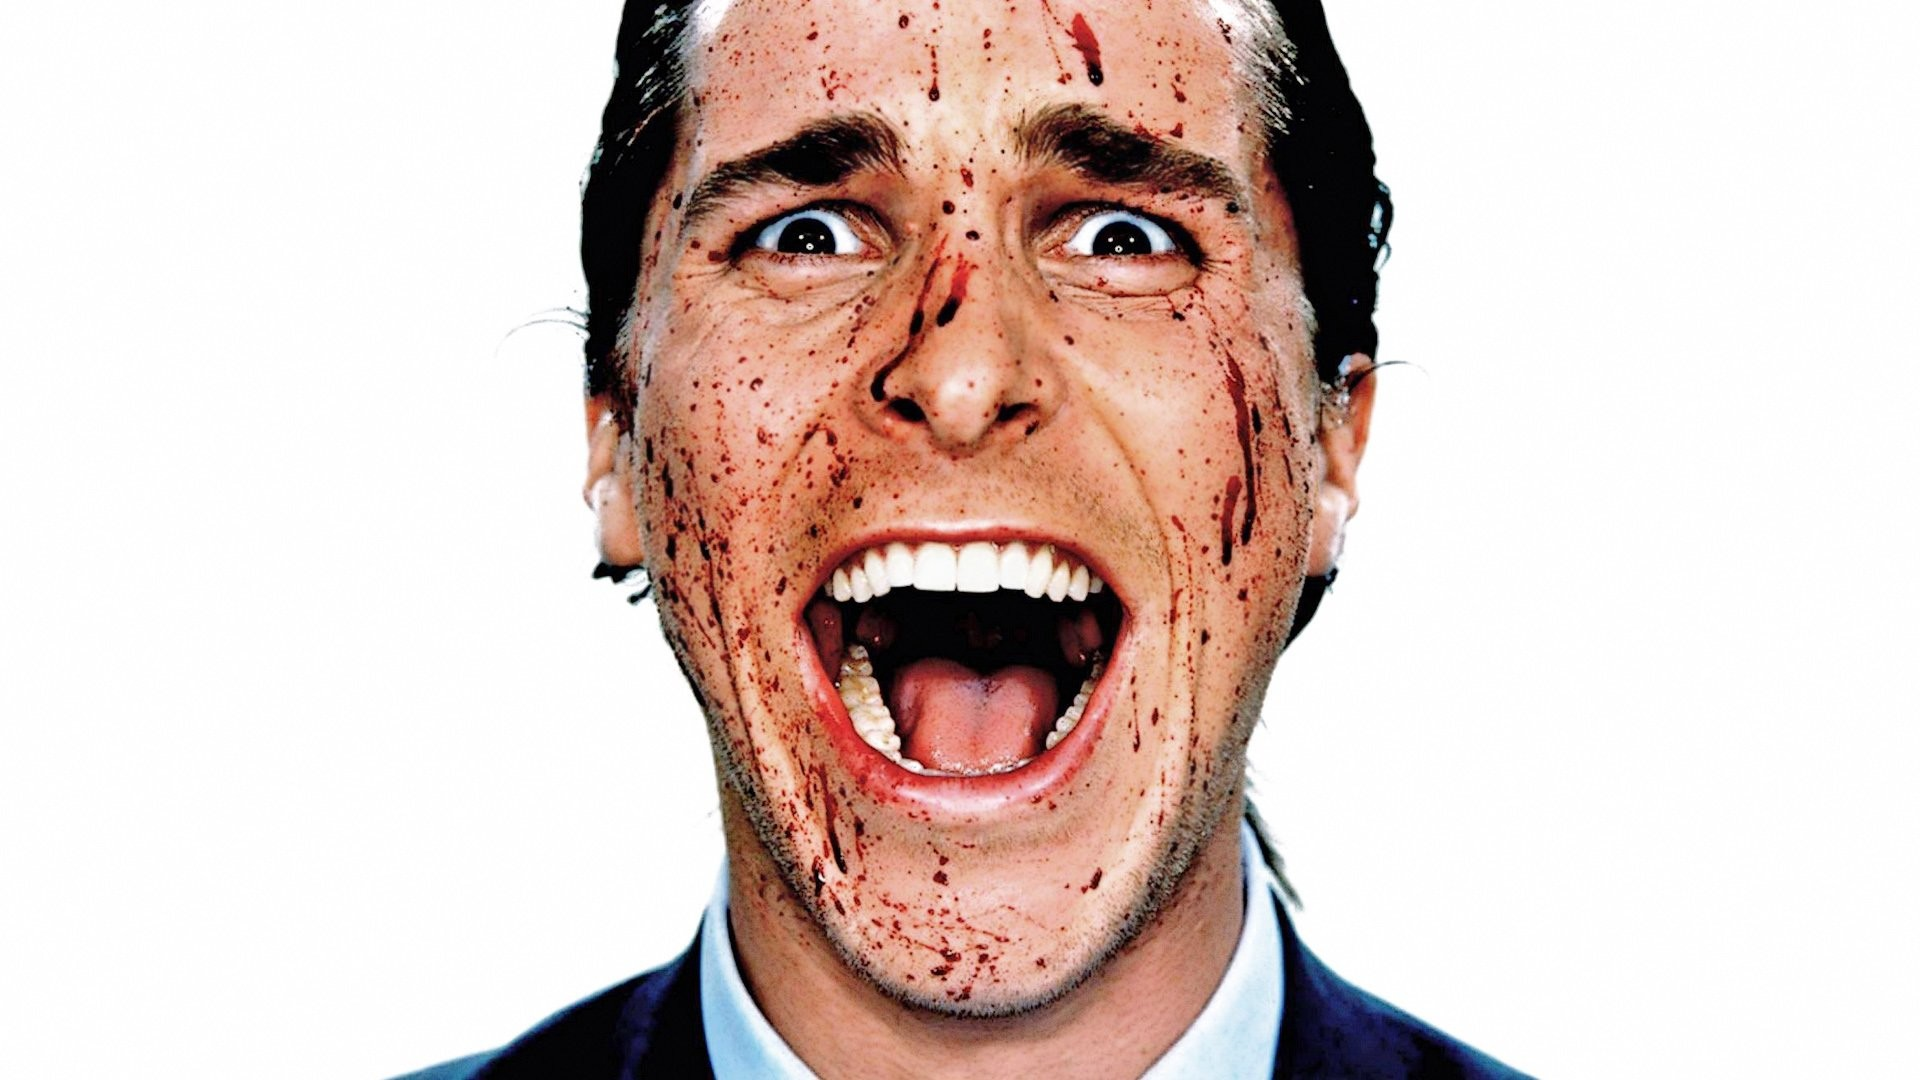 American Psycho Wallpaper 74 images